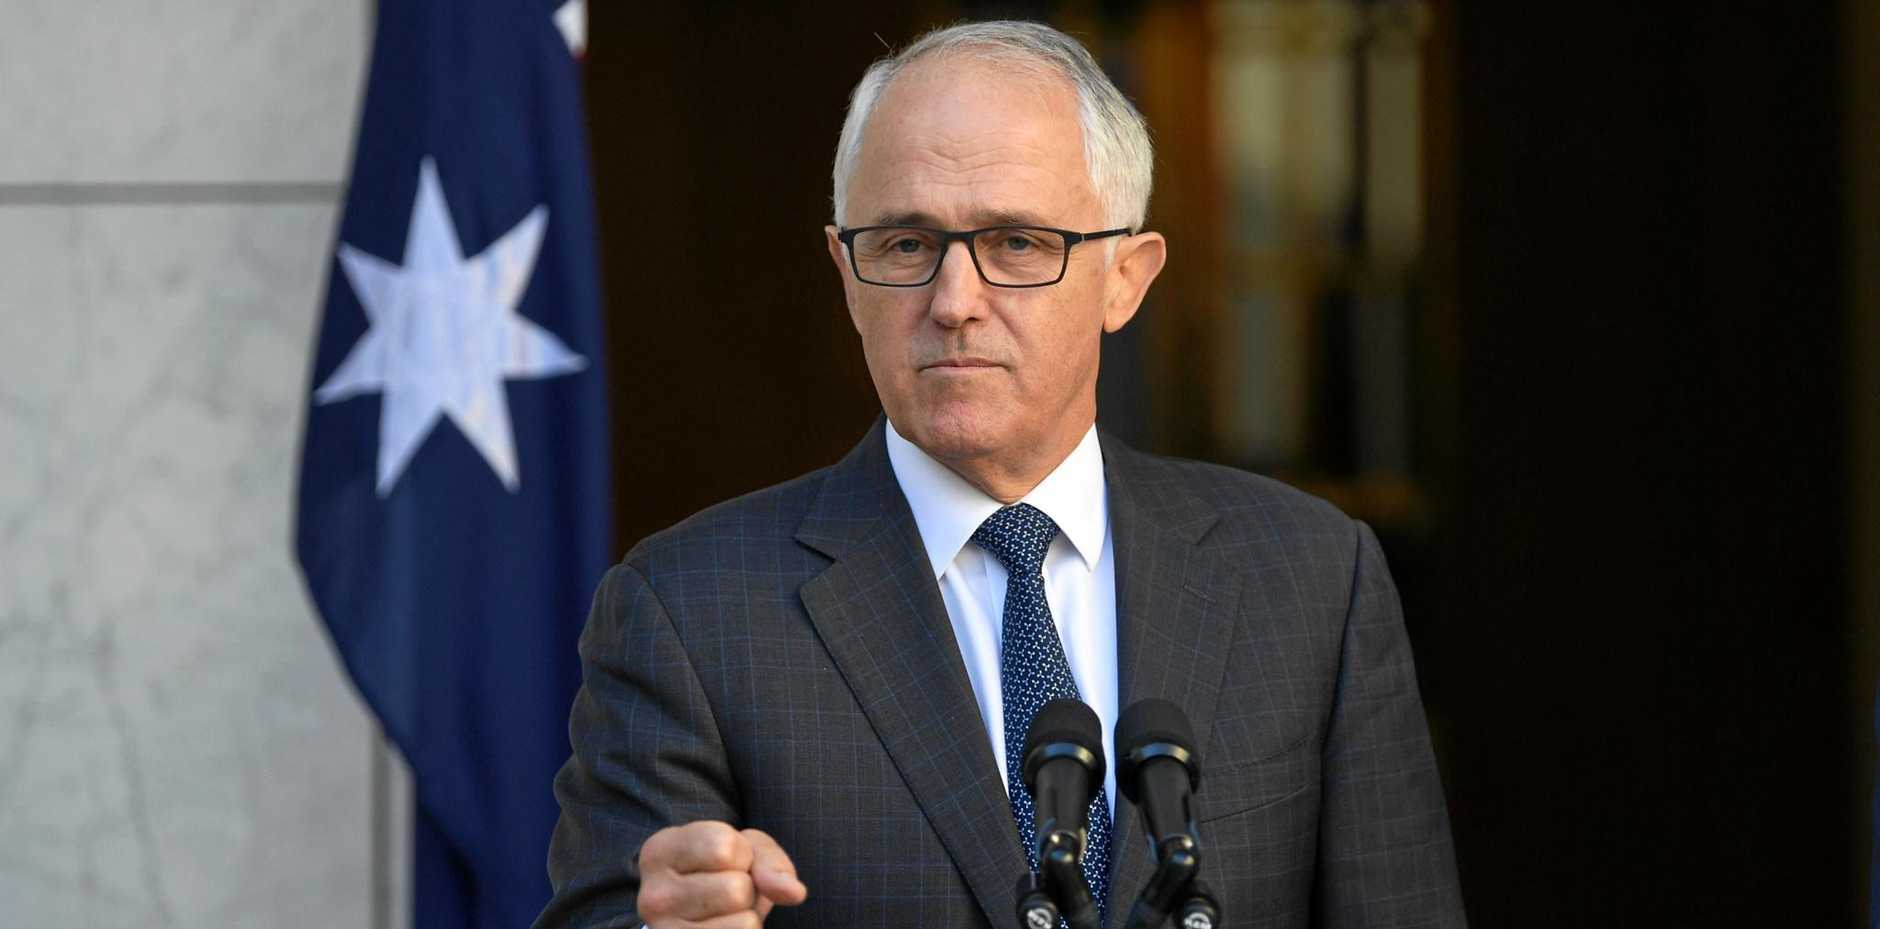 JOBS FOR AUSSIES: Malcolm Turnbull believes abolishing the 457 visa program will benefit the nation.